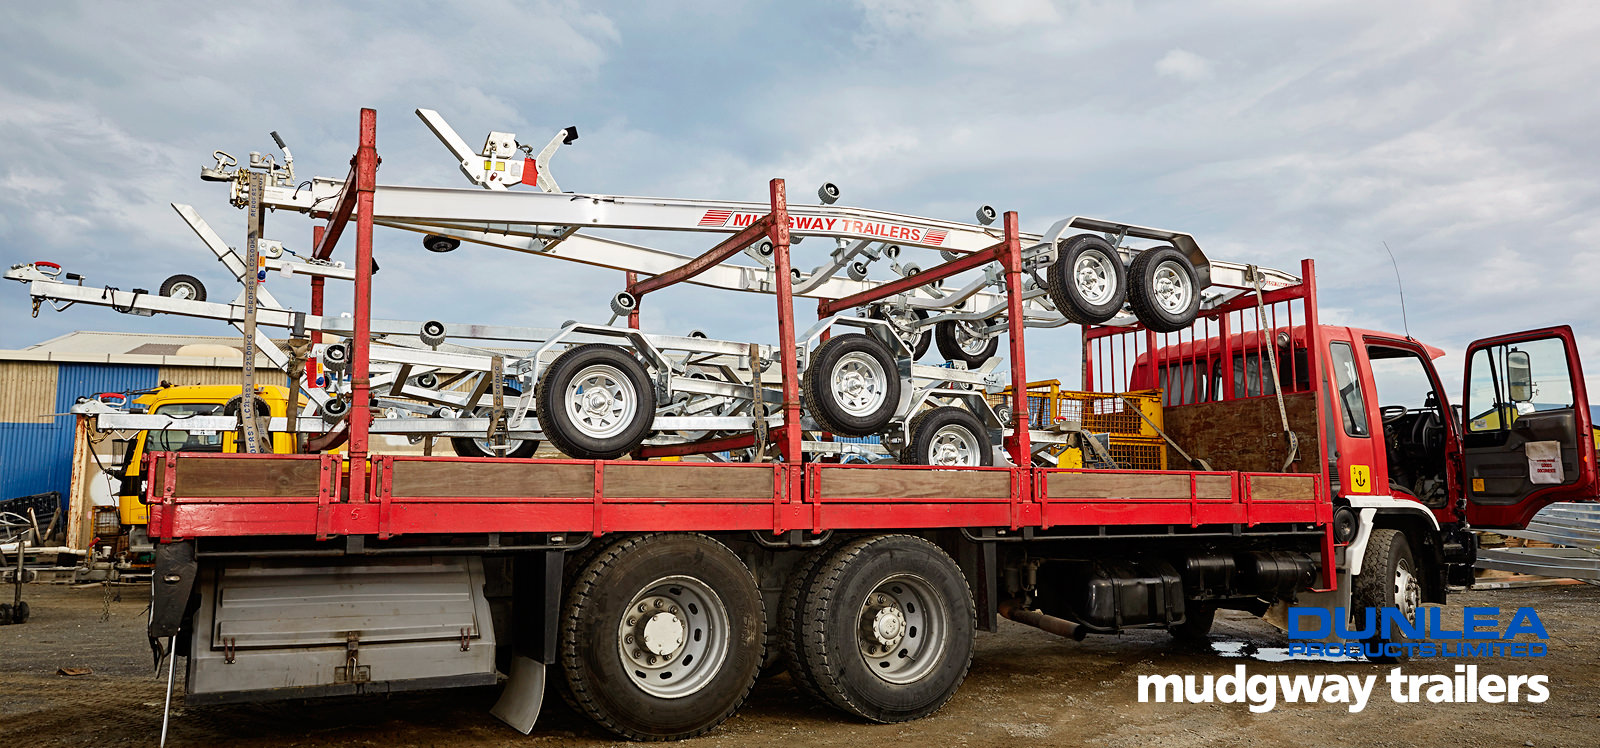 Dunlea Products Mudgway trailers